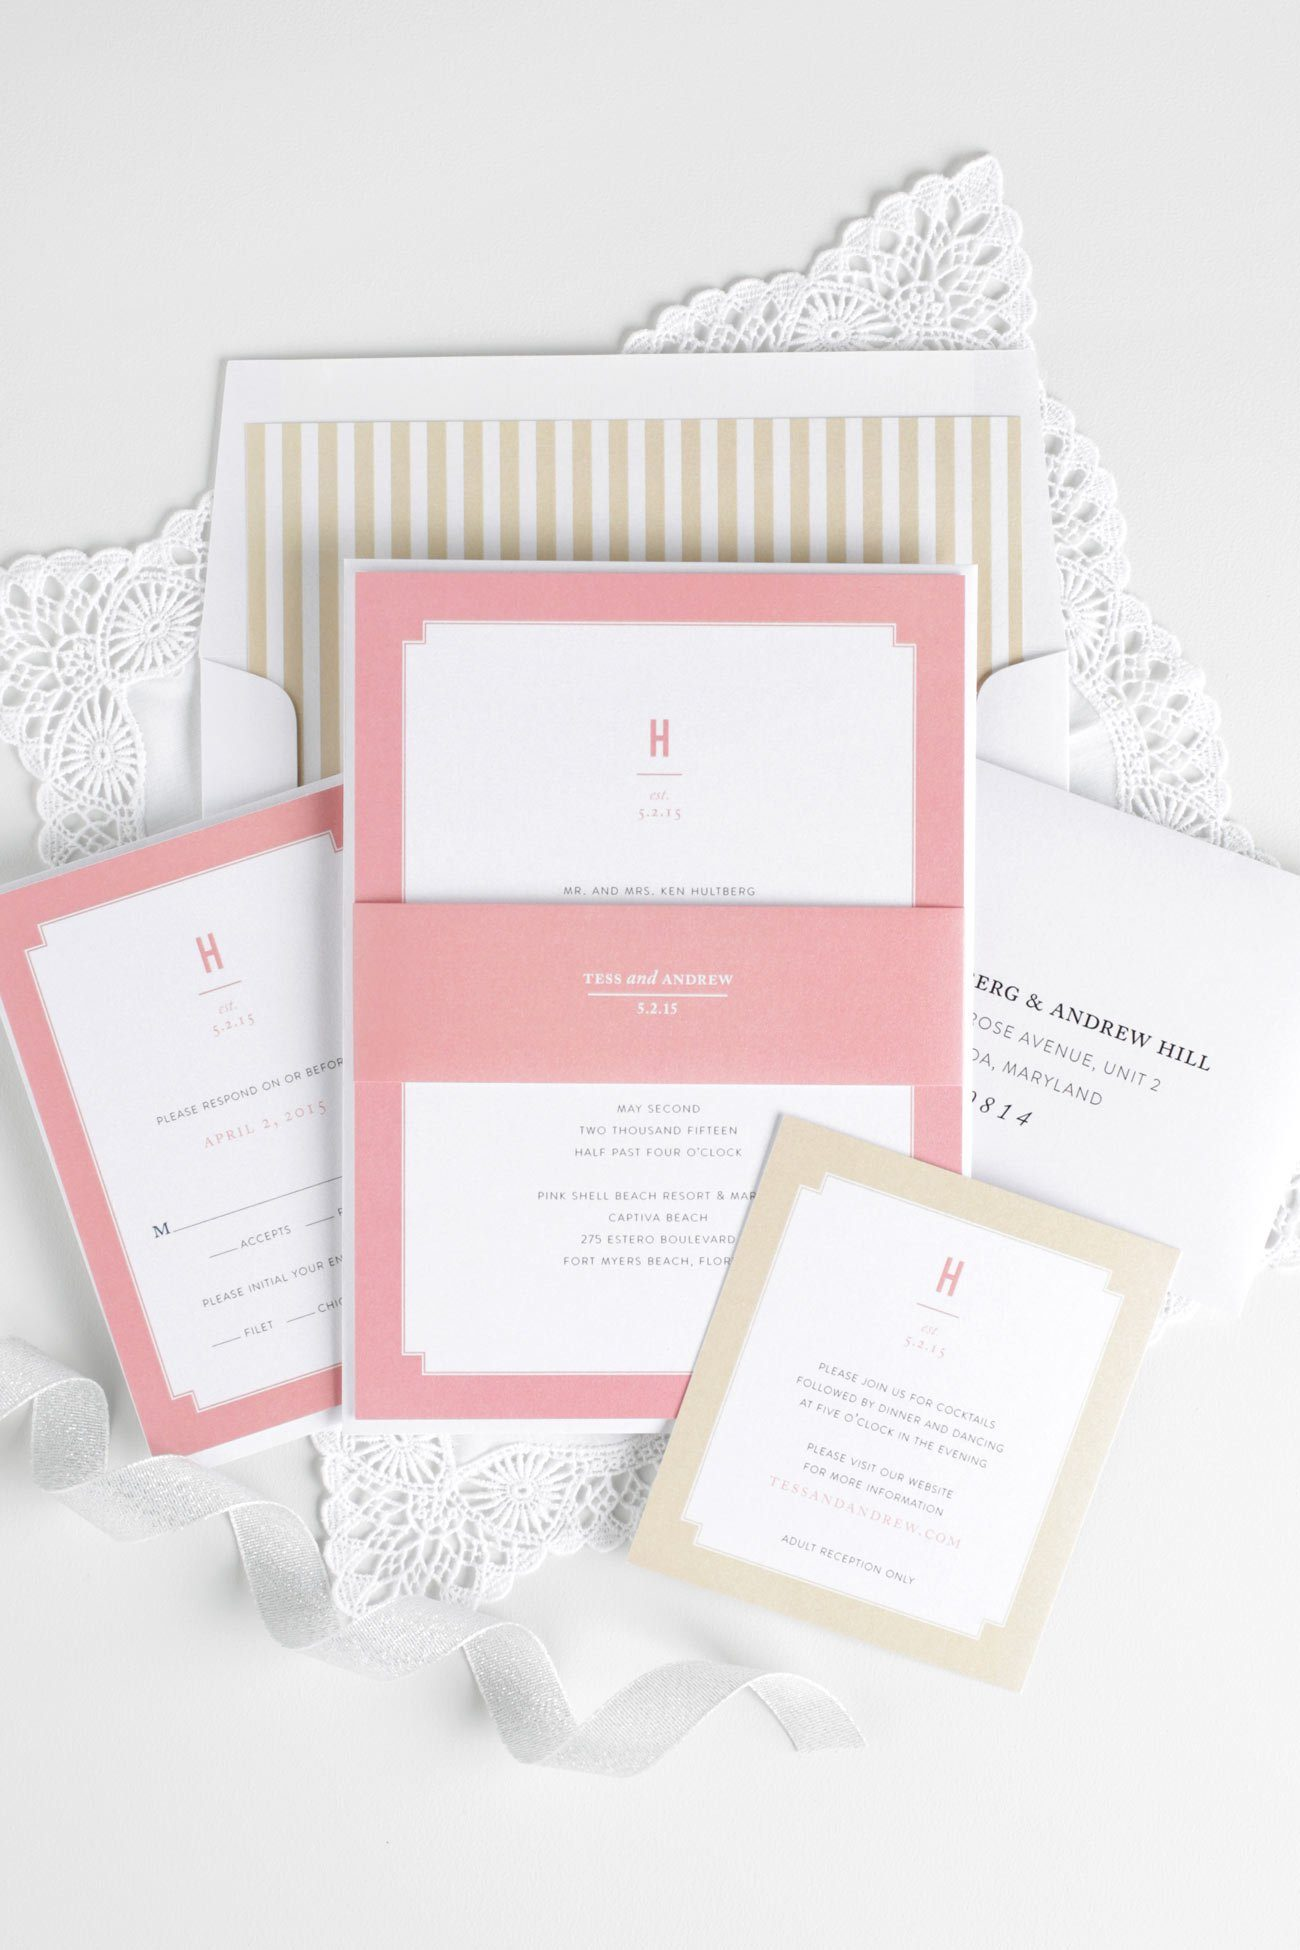 Coral and Gold Wedding Invitations with stripe accents